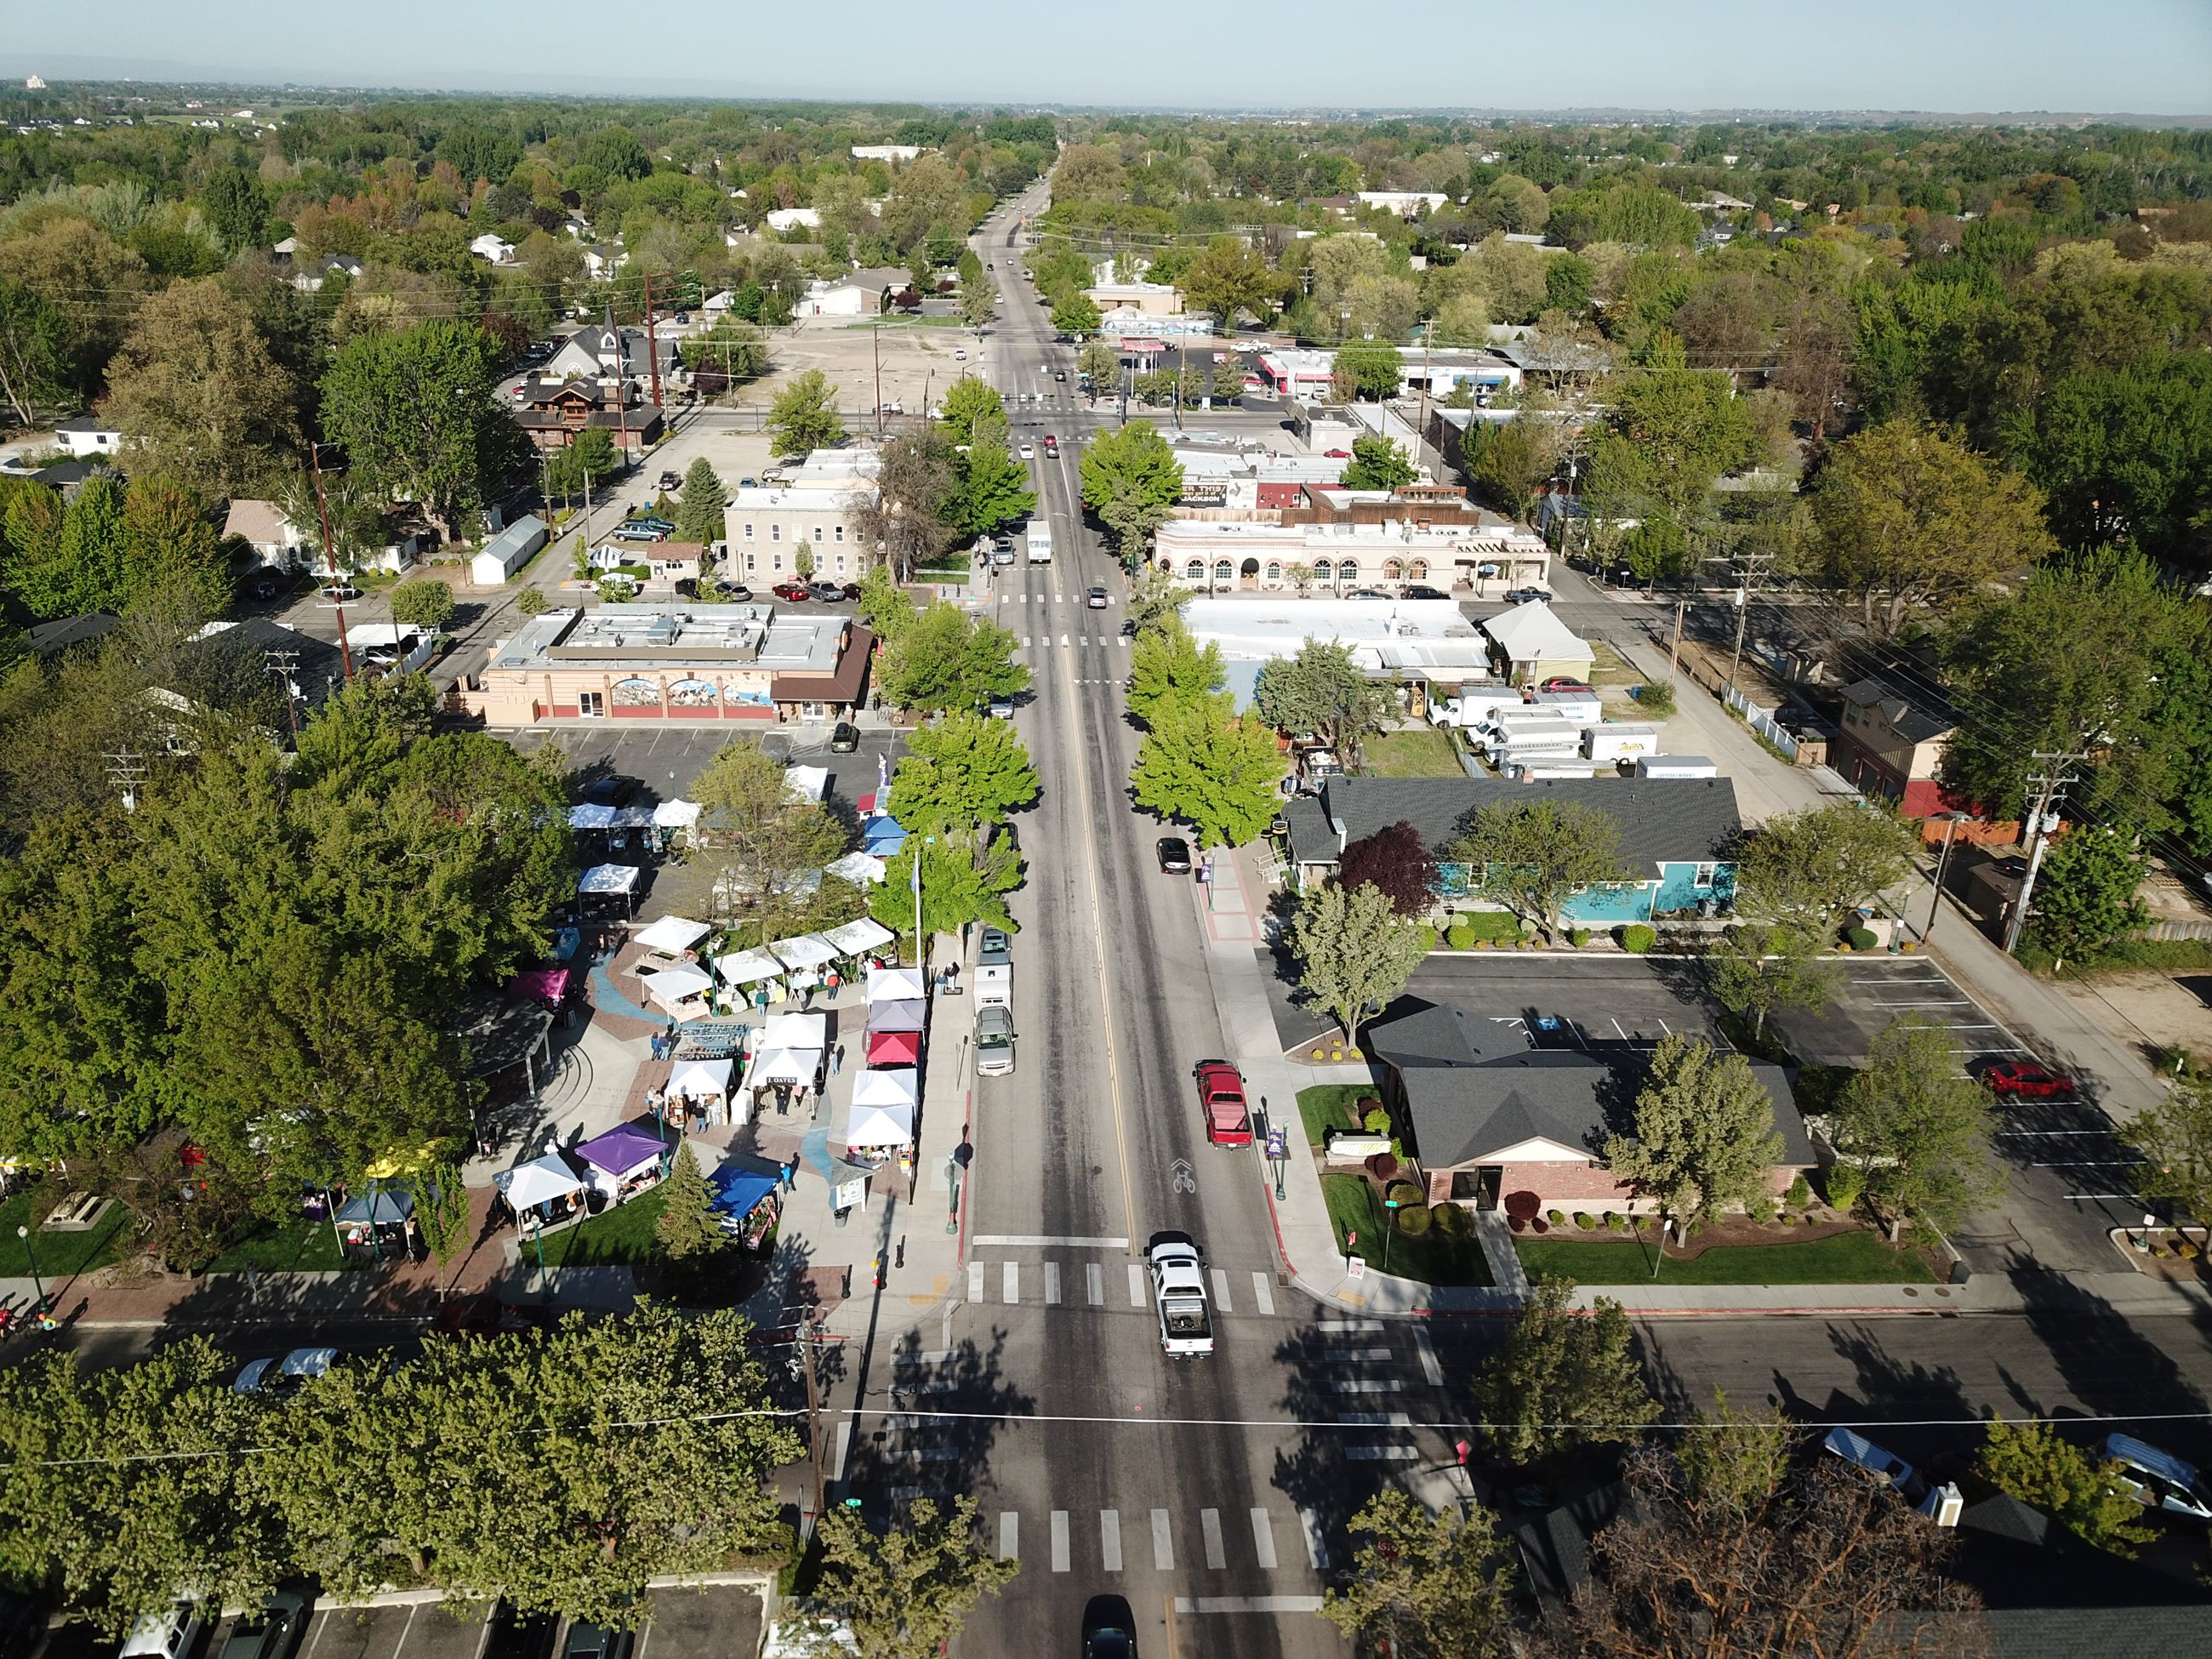 An aerial view of State Street, Second Avenue, and the Eagle Saturday Market.